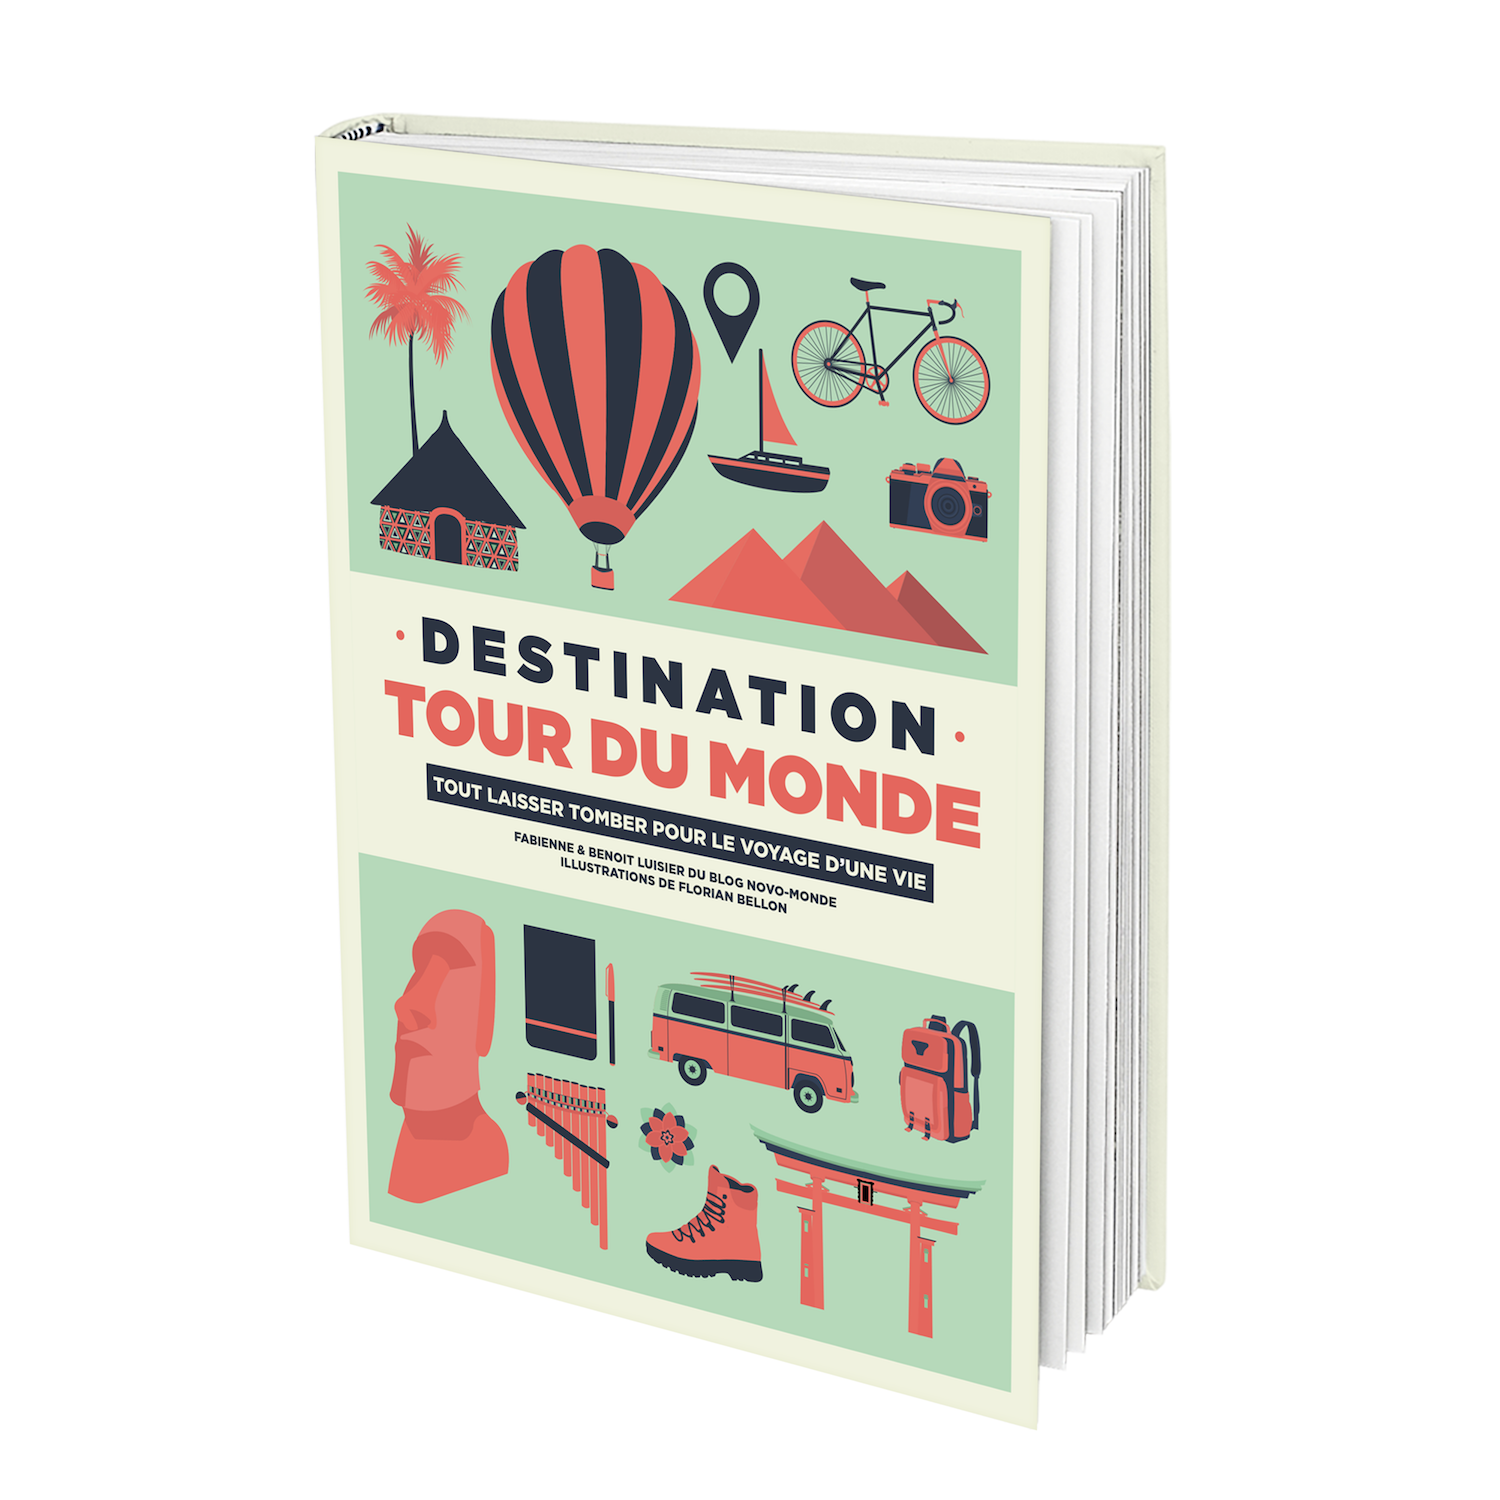 Destination tour du monde ebook/livre